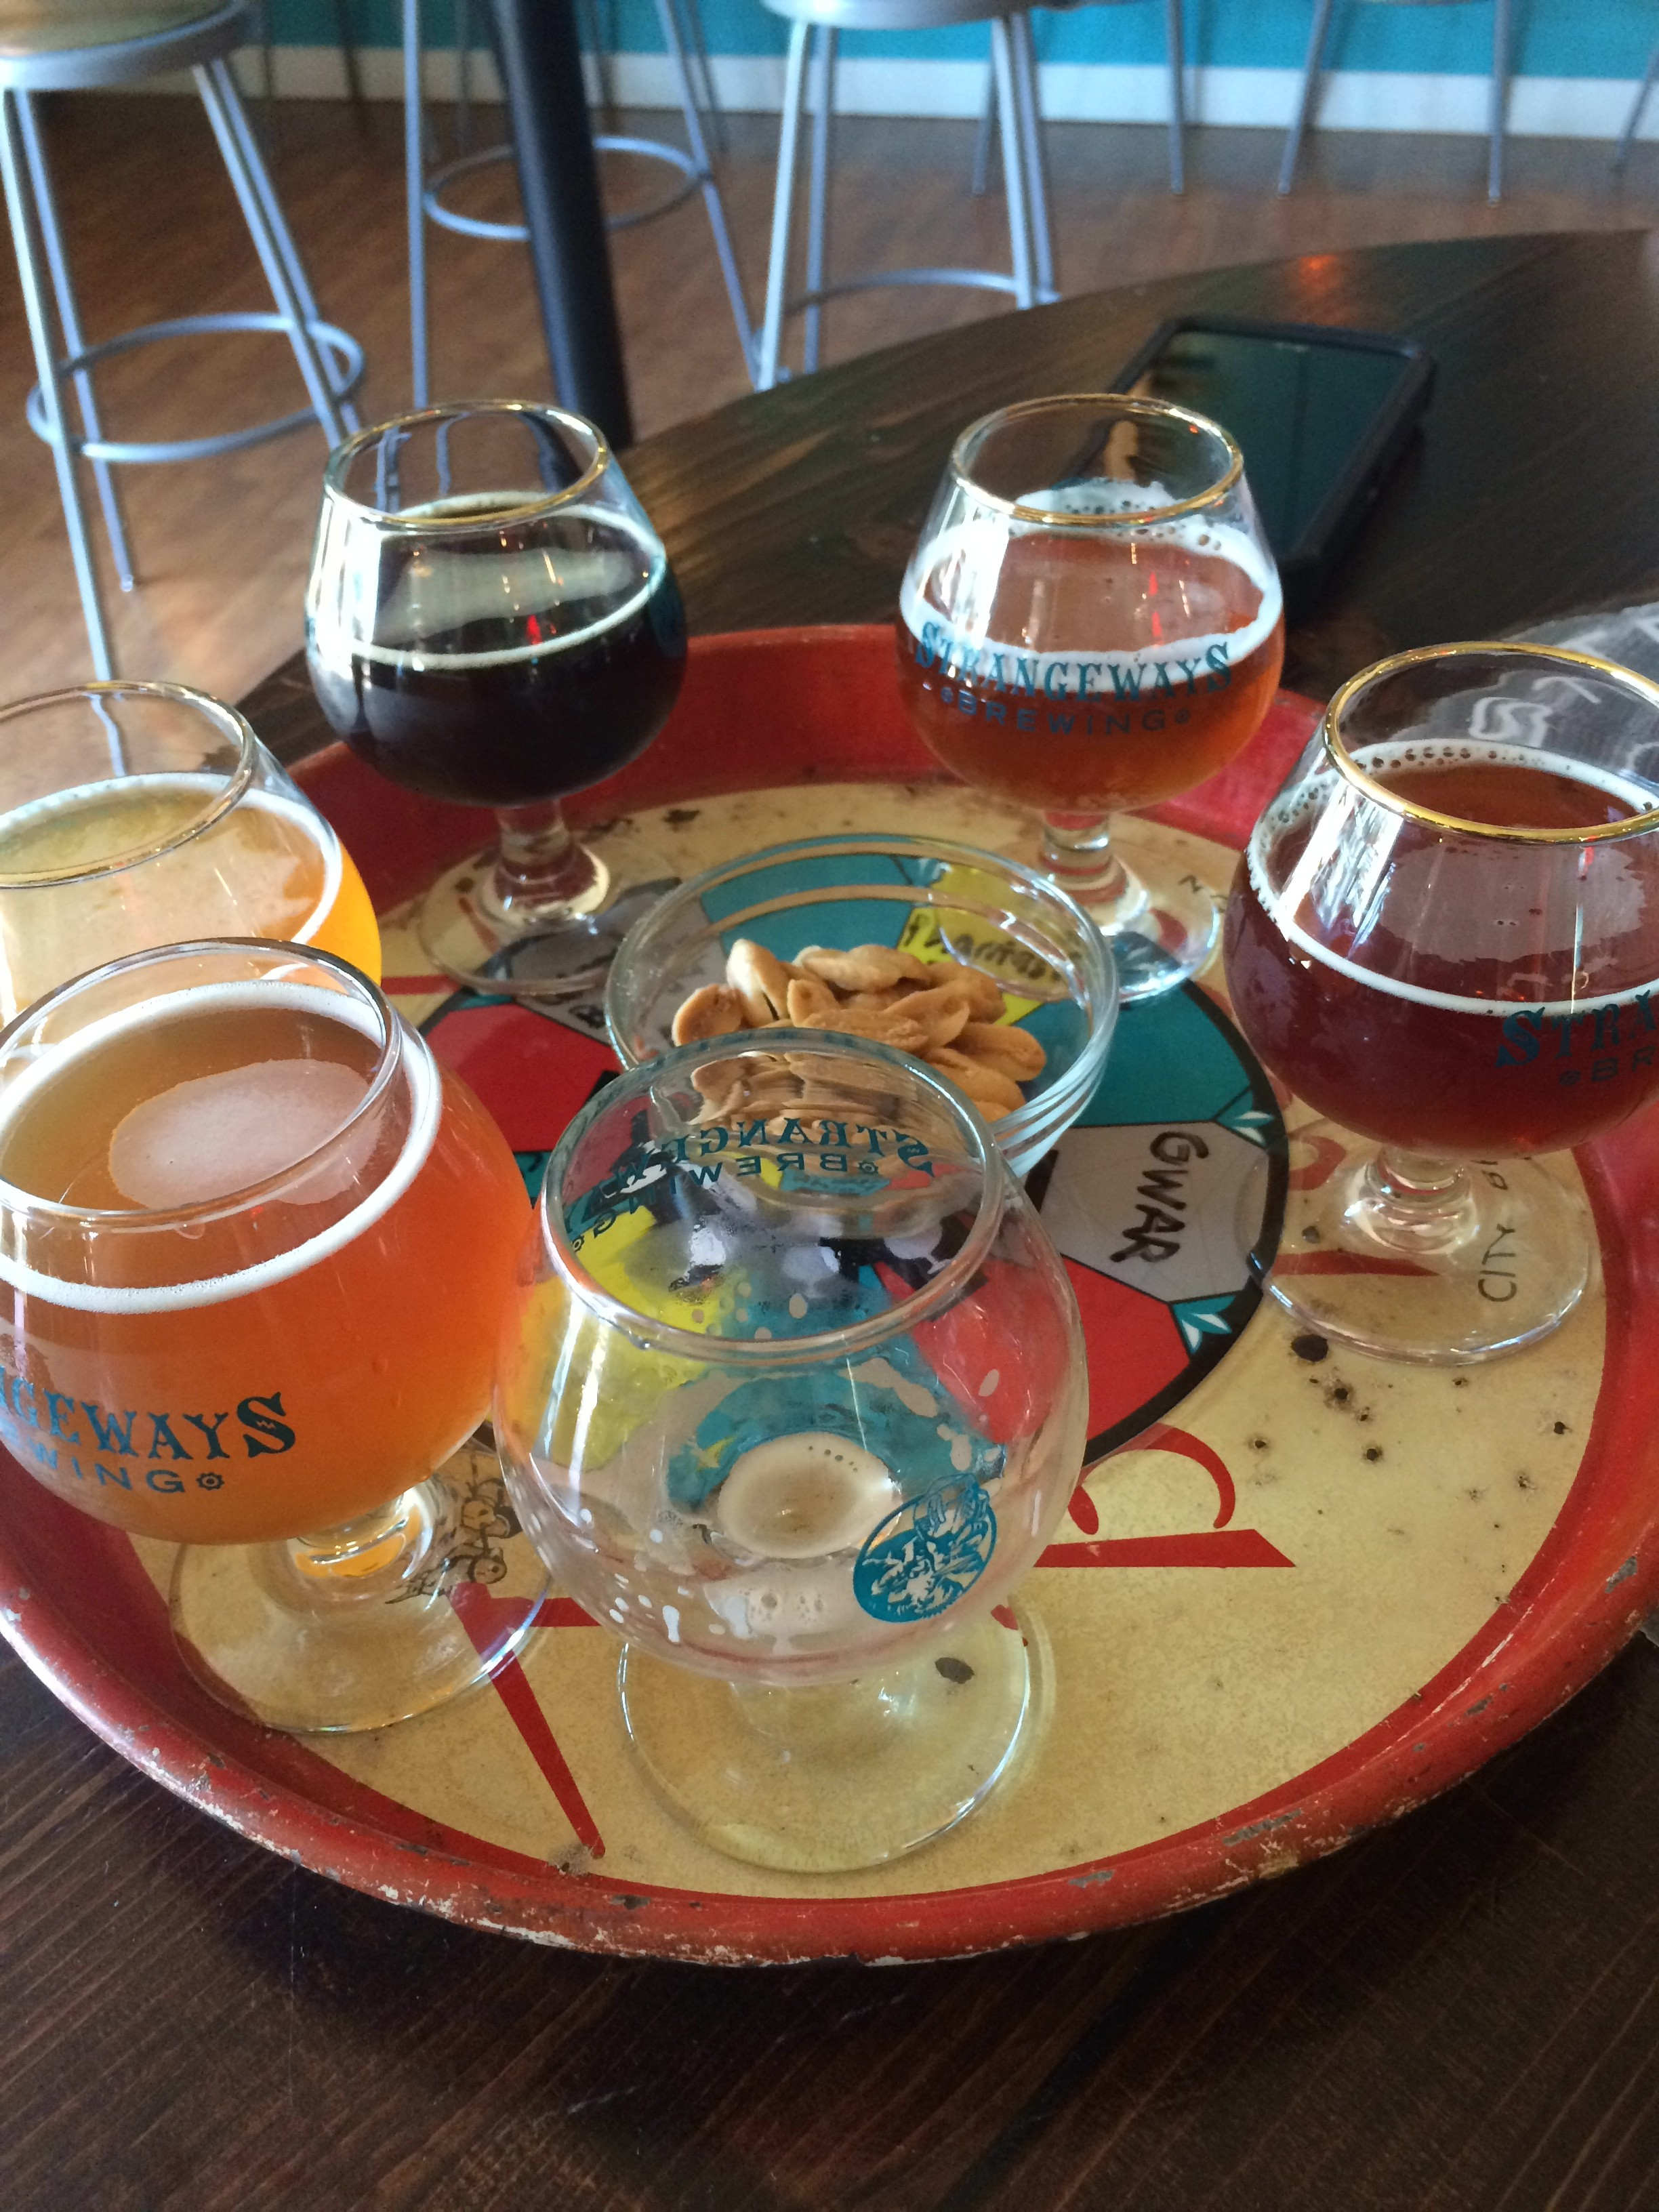 nucleus-flight-strangeways-brewing